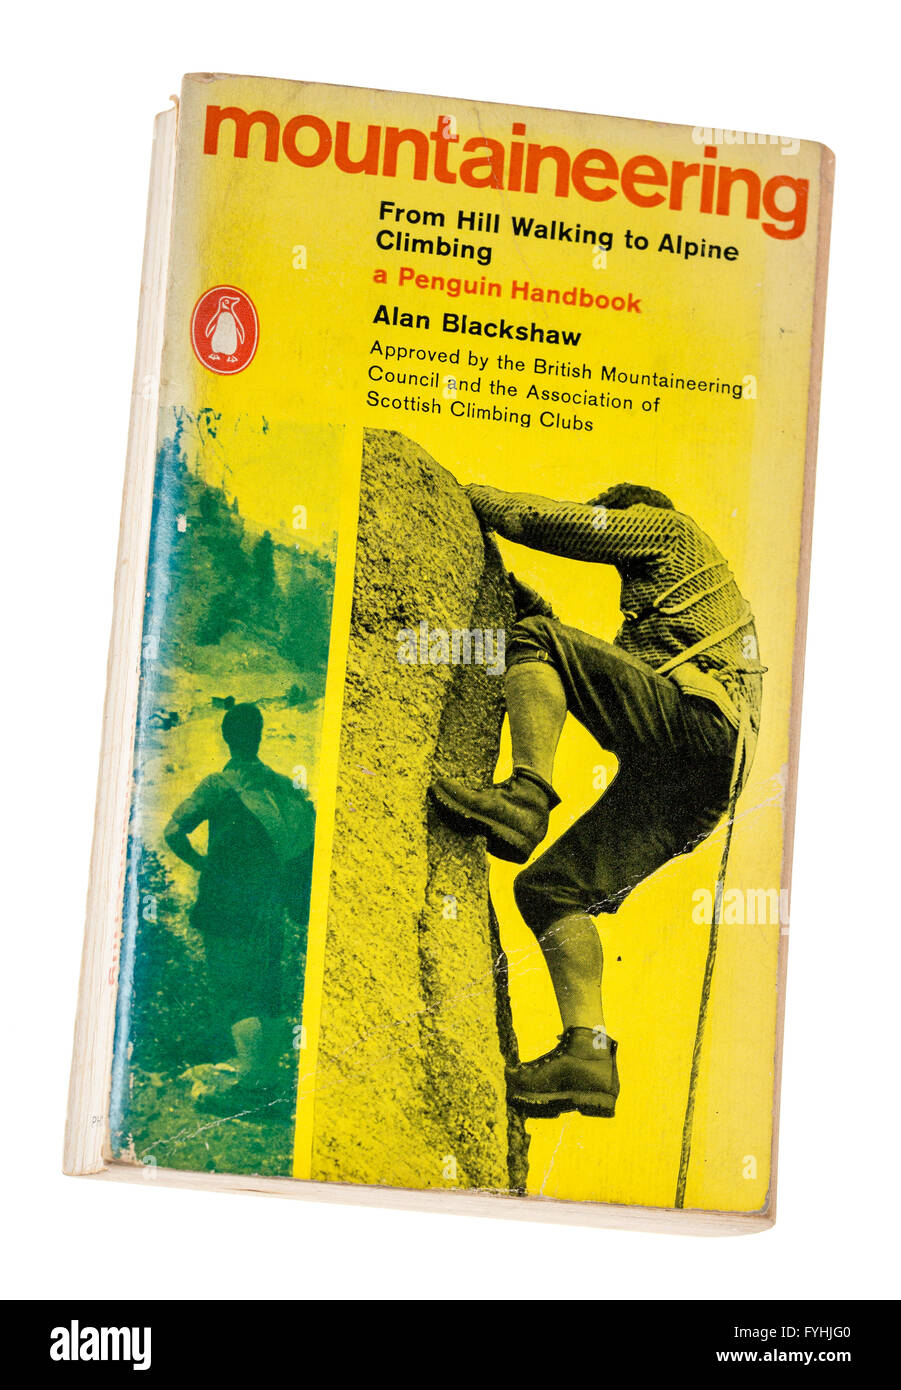 Classic mountaineering instruction handbook by Alan Blackshaw published by Penguin in the 1960s - Stock Image